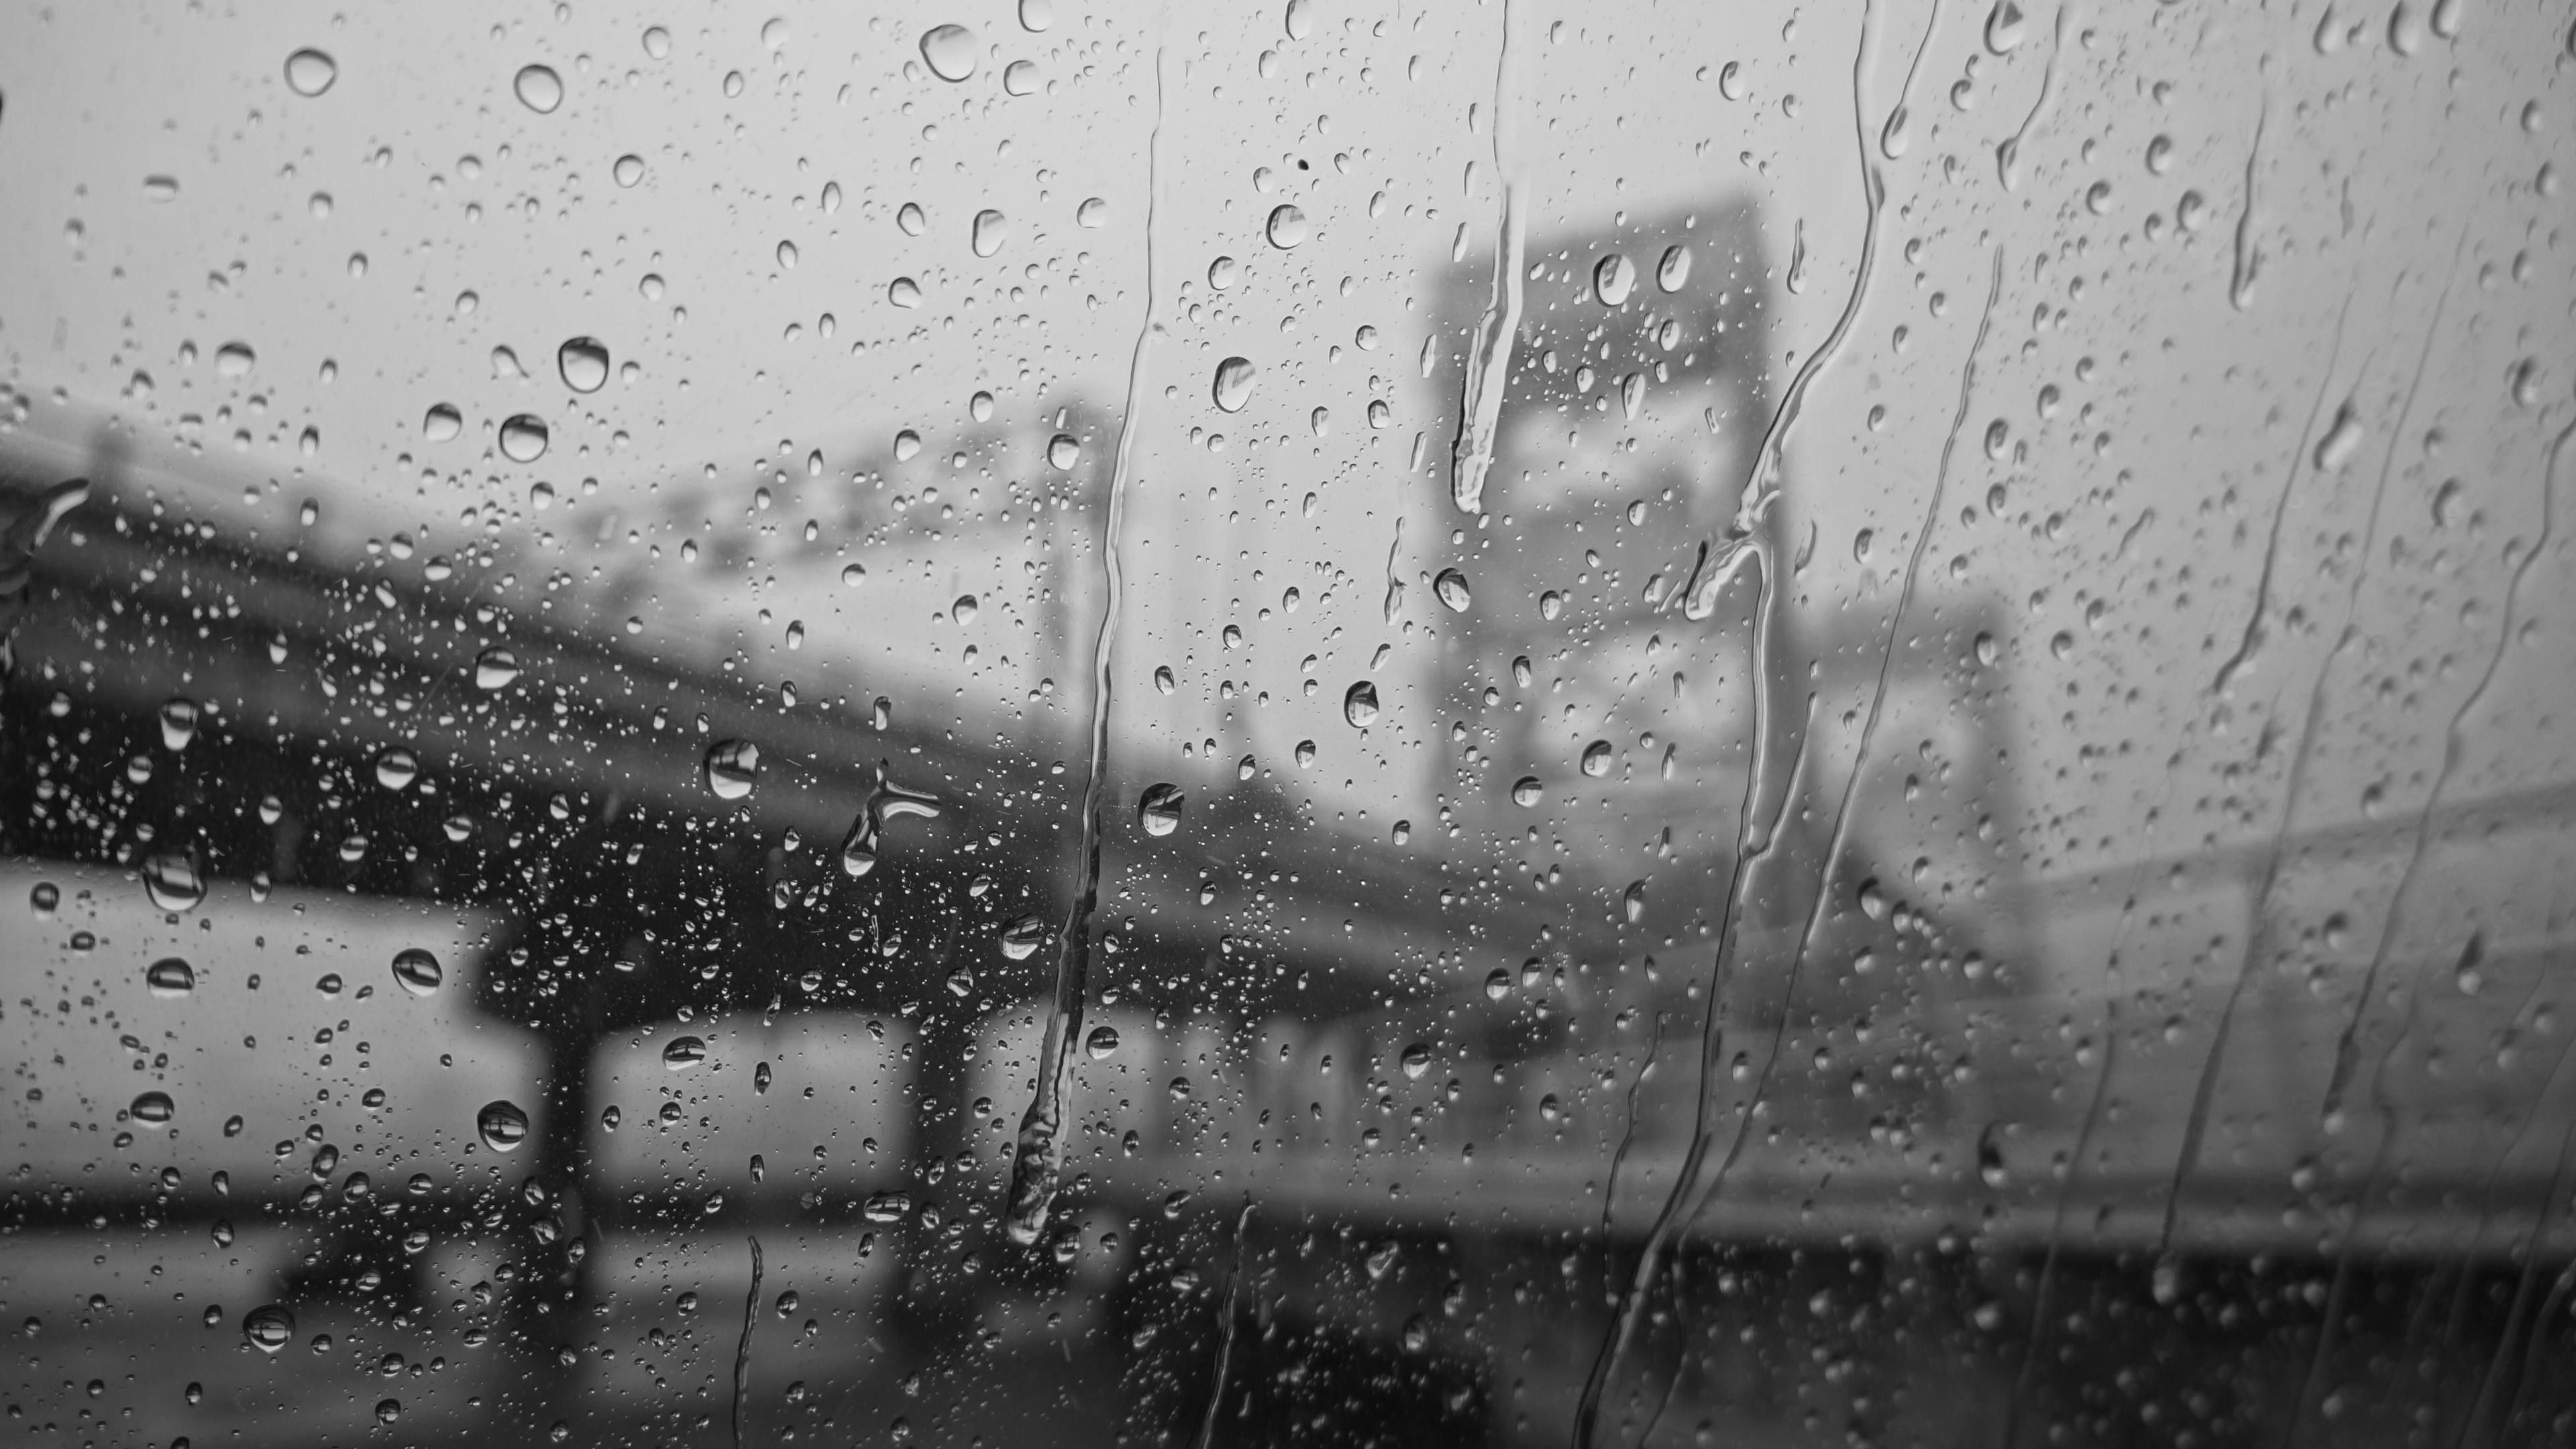 Aesthetic Rain Wallpapers   Top Aesthetic Rain Backgrounds